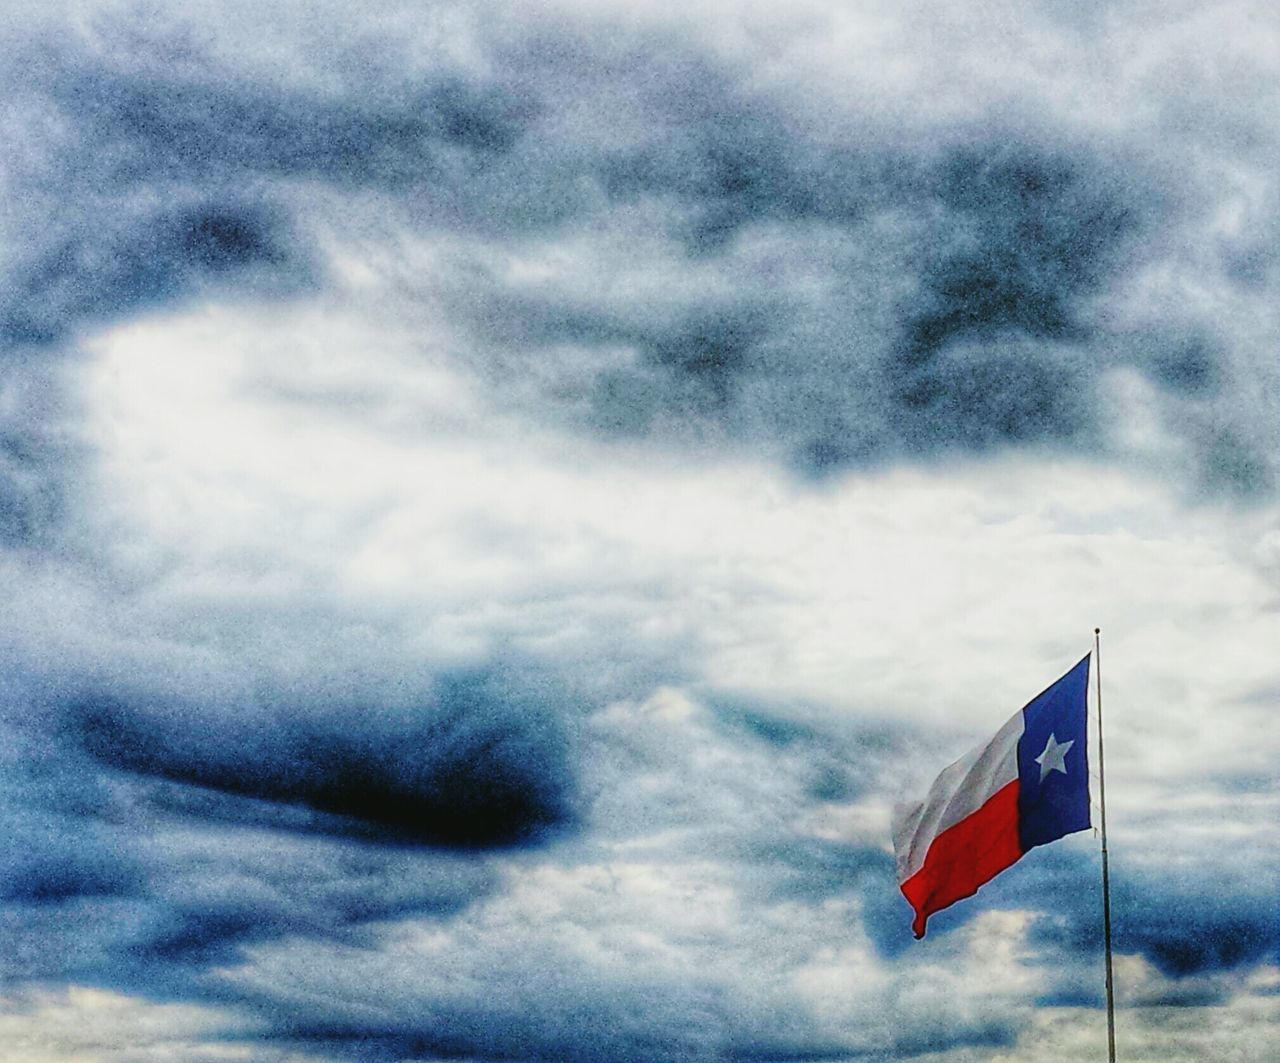 Beautiful stock photos of texas, Auto Post Production Filter, Beauty In Nature, Cloud - Sky, Cloudy